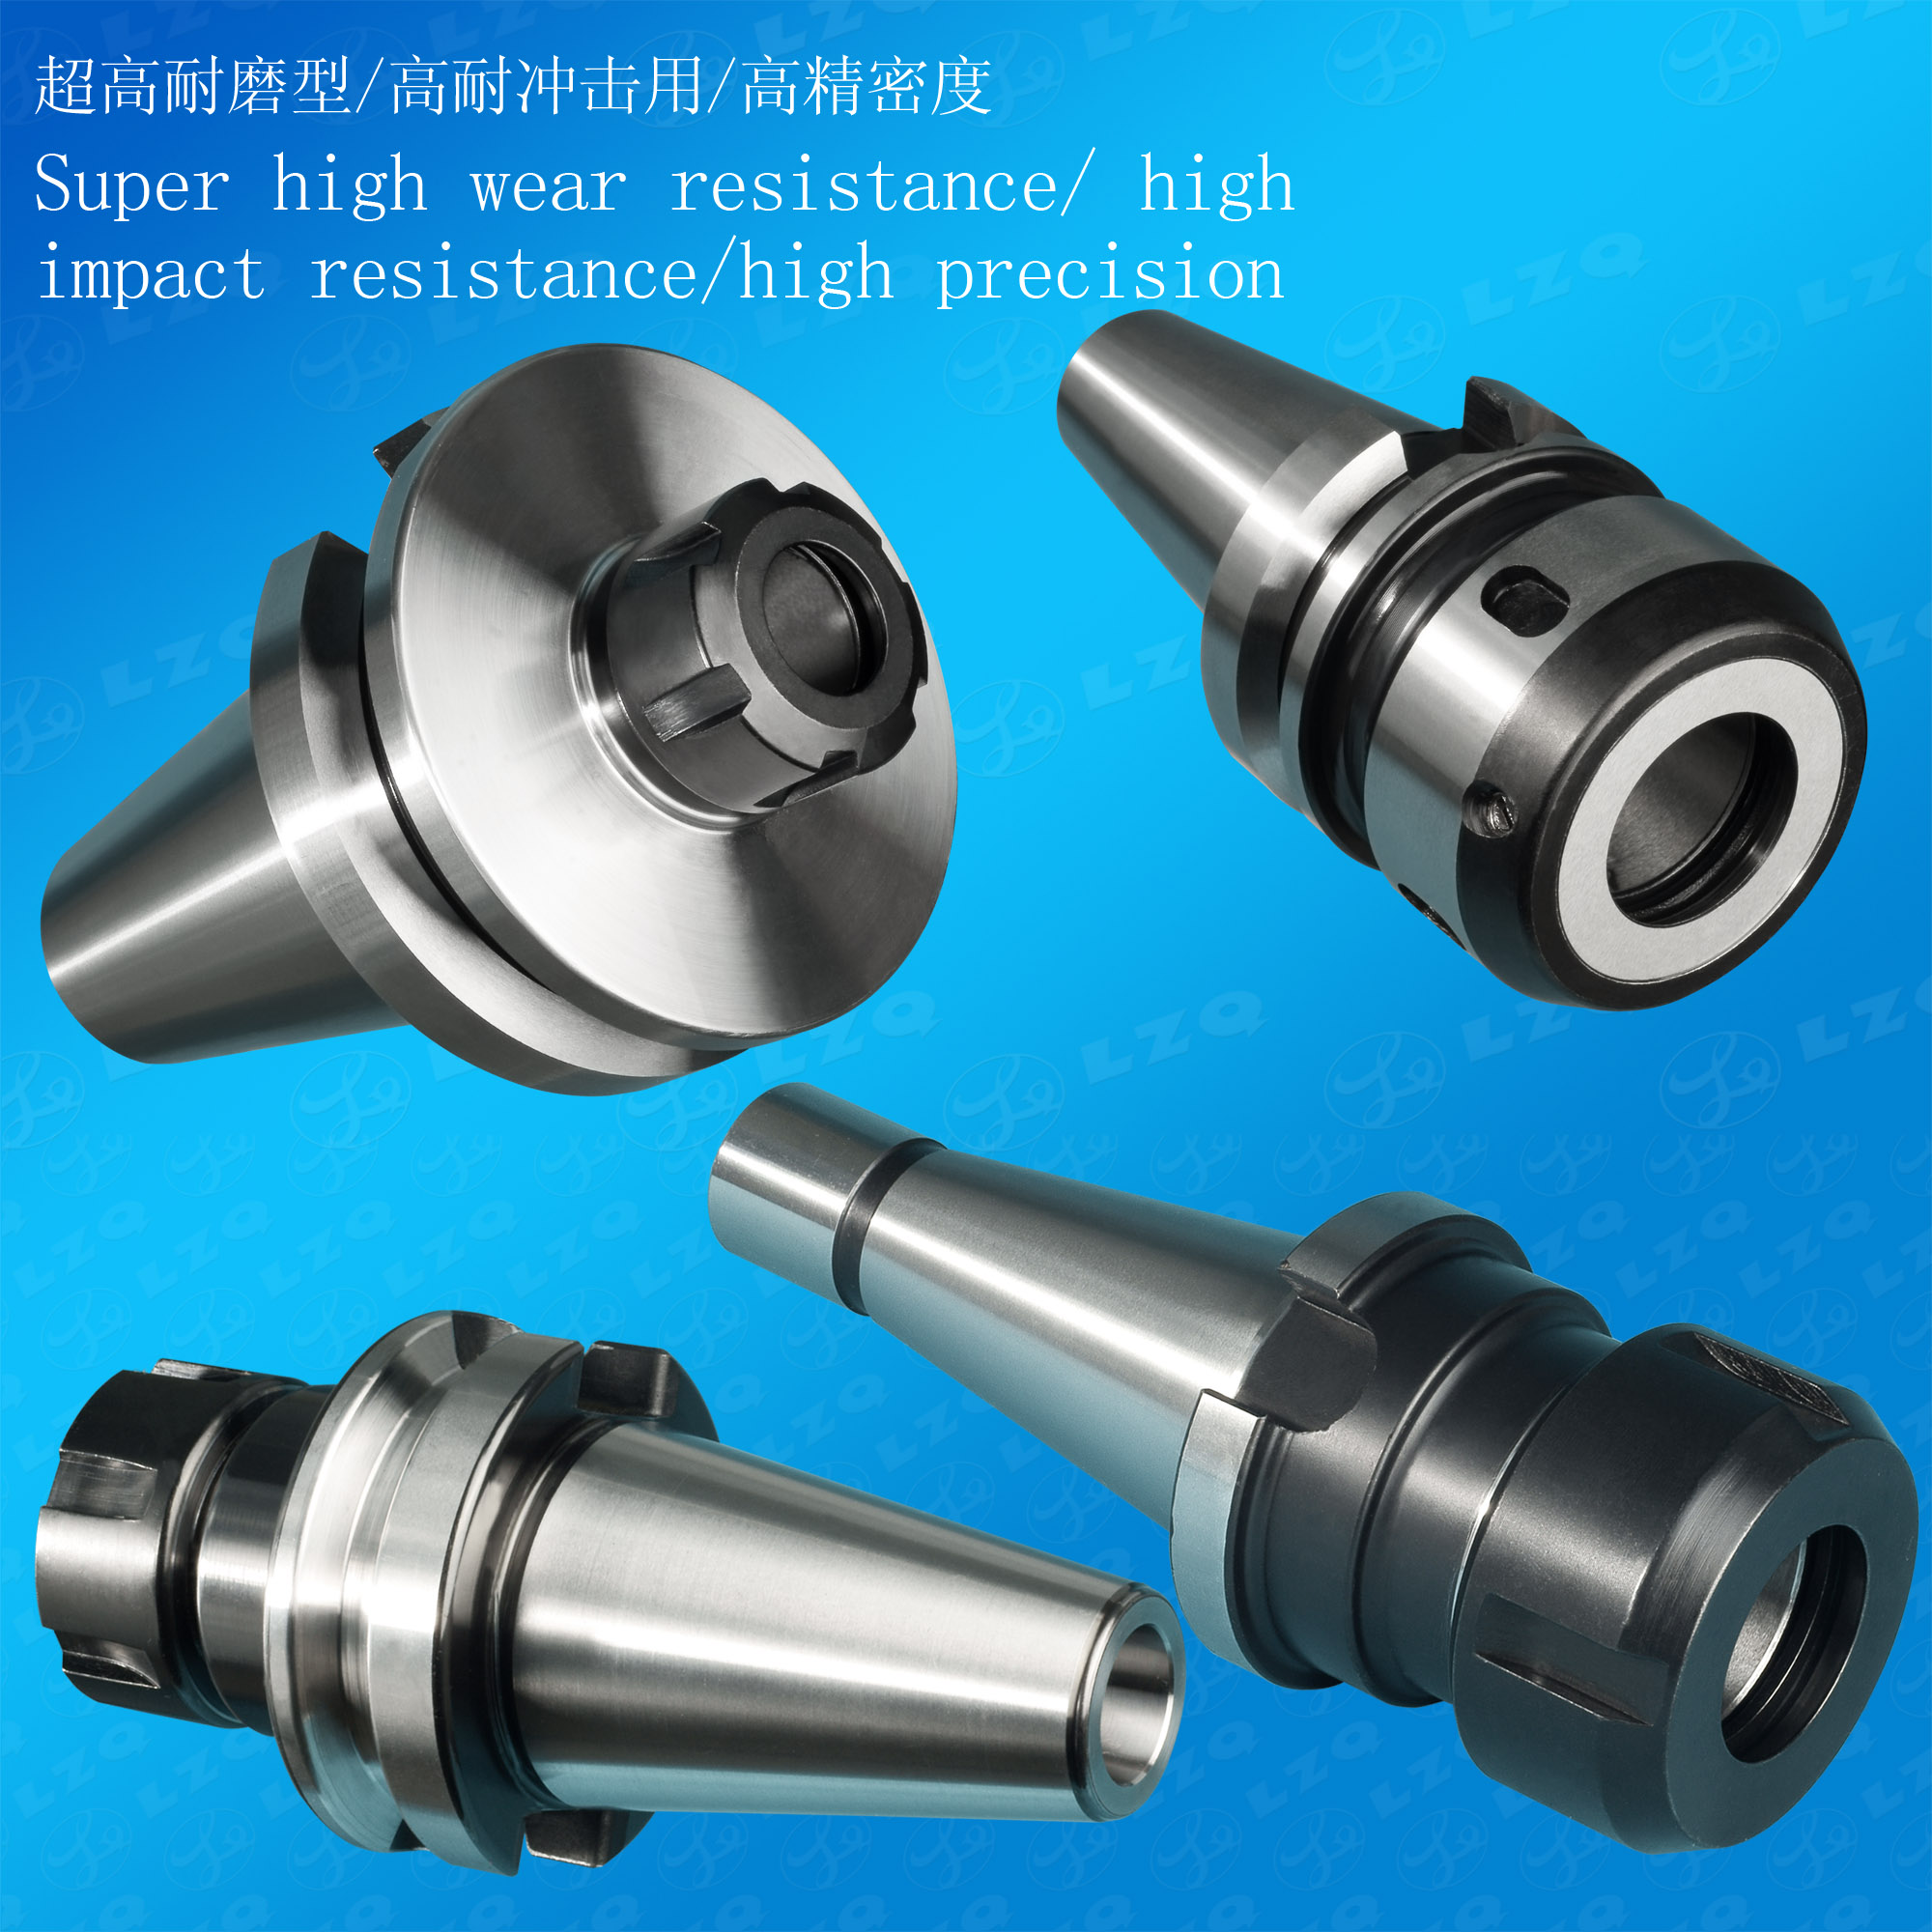 Titanium Alloy Turning Tool, Cut-Off Tool, Carbide Turning Holder